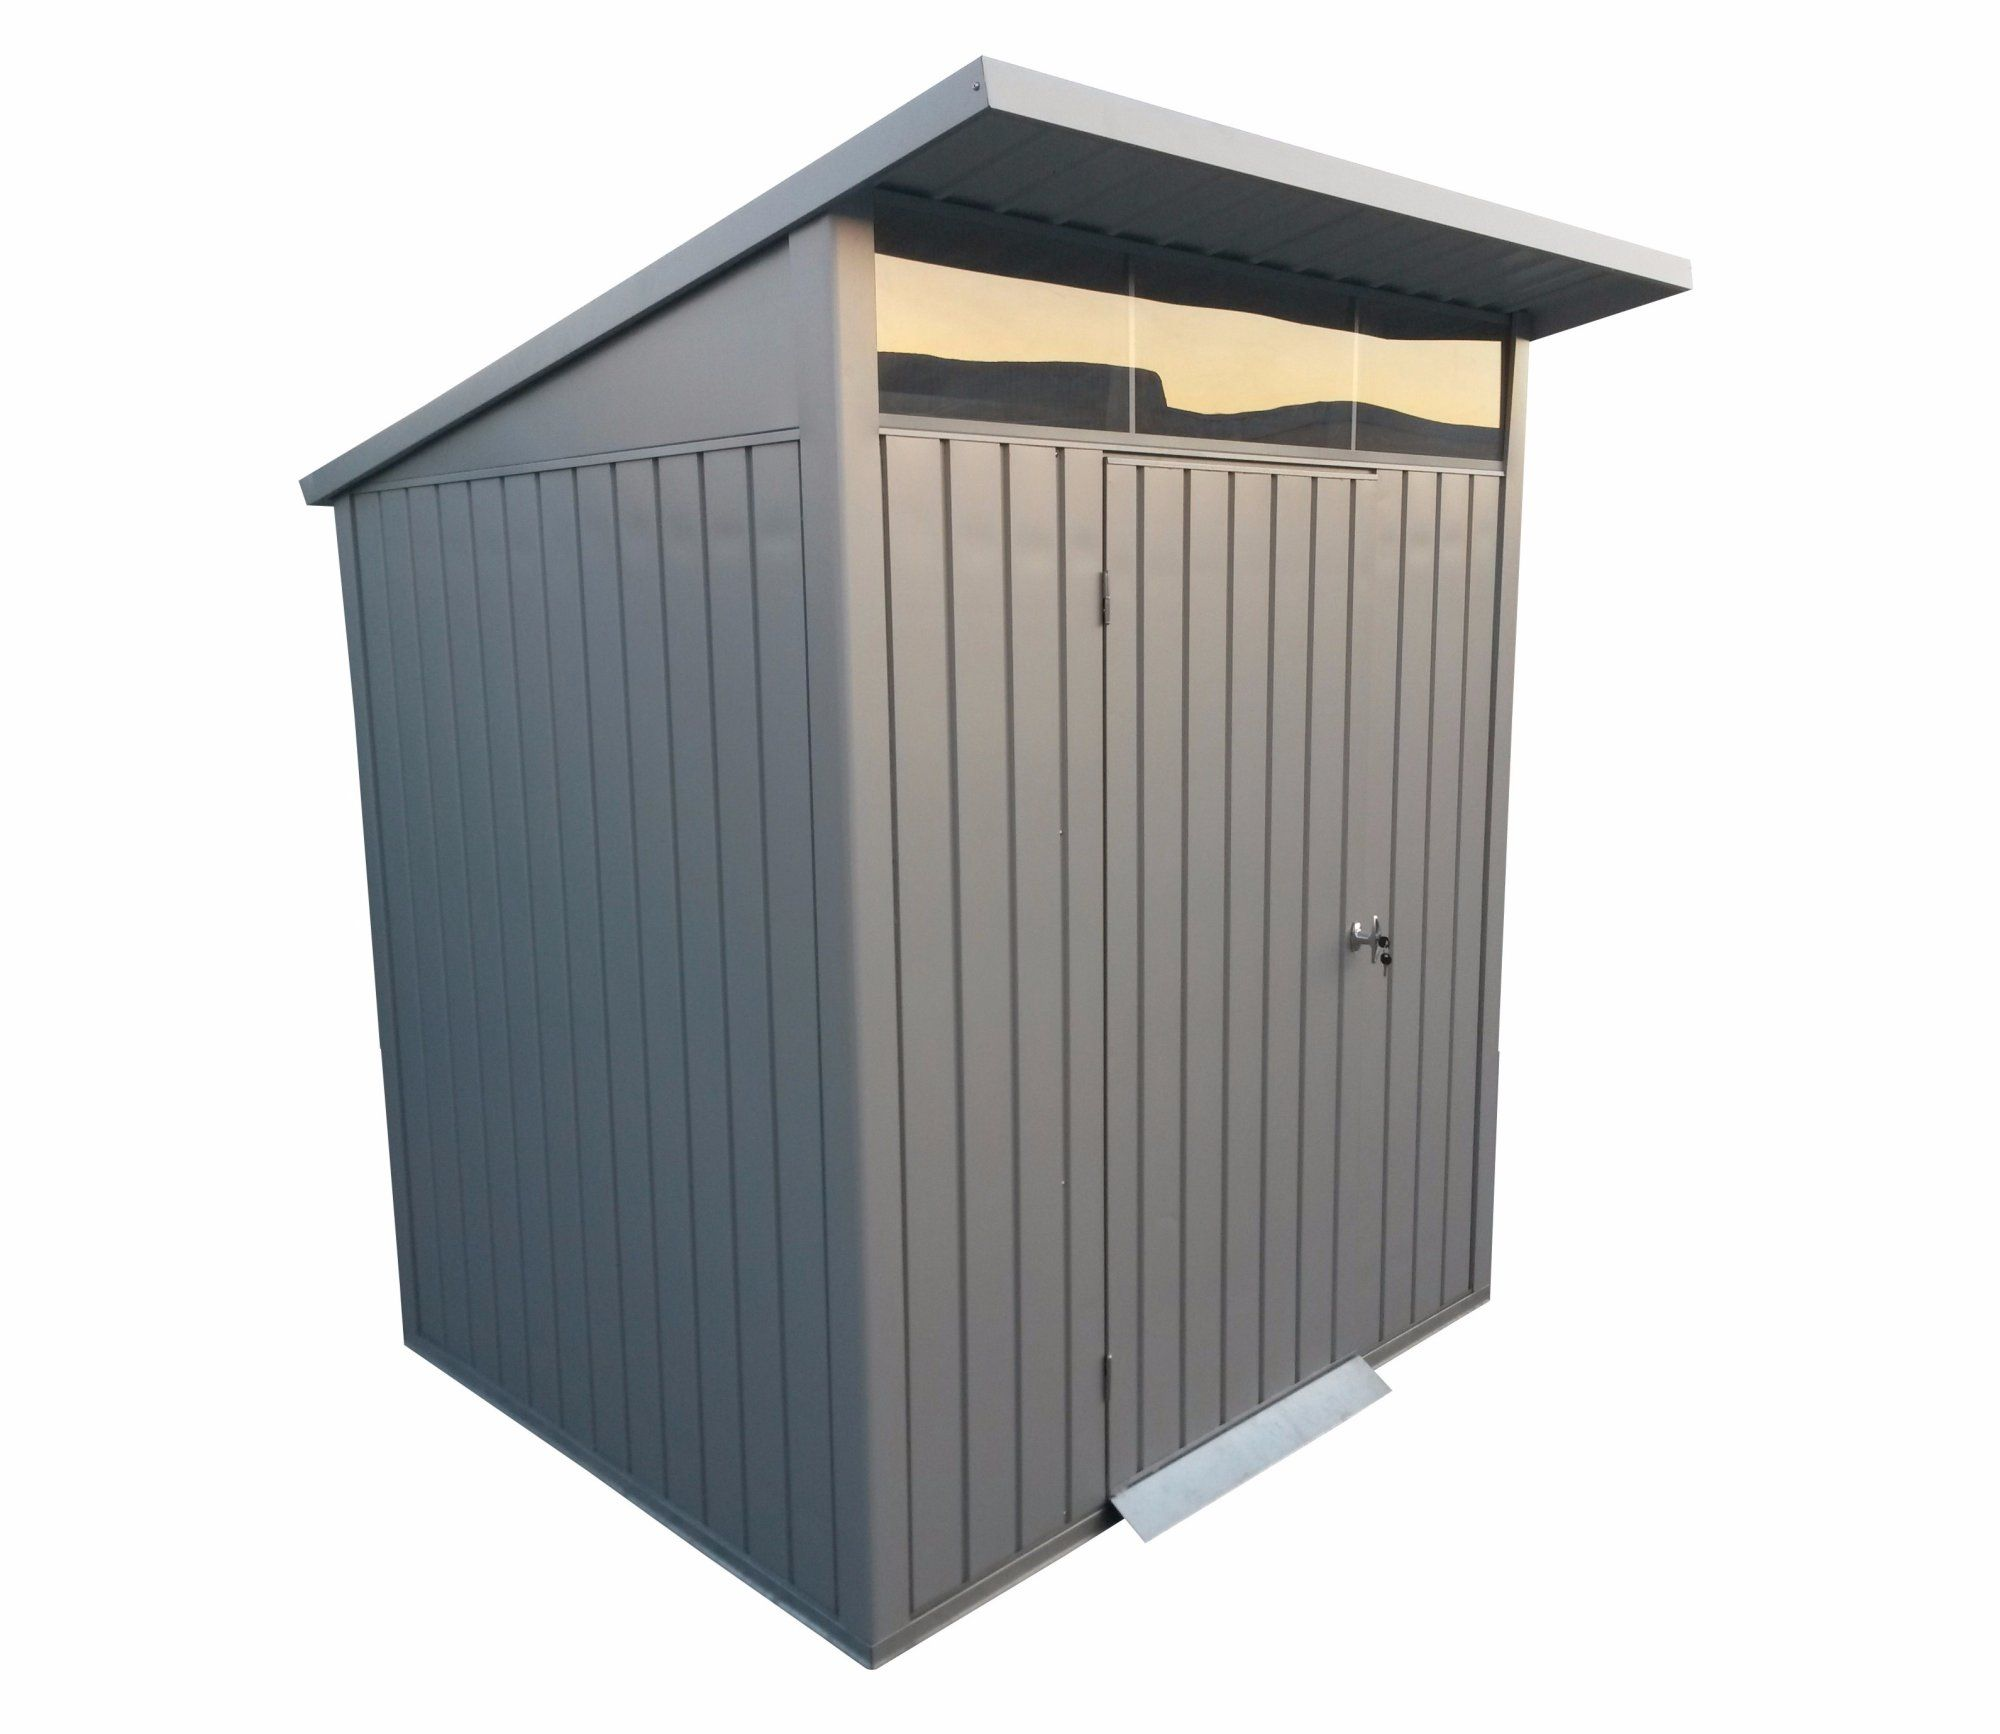 duramax palladium 6 x 5 metal shed gardensitecouk